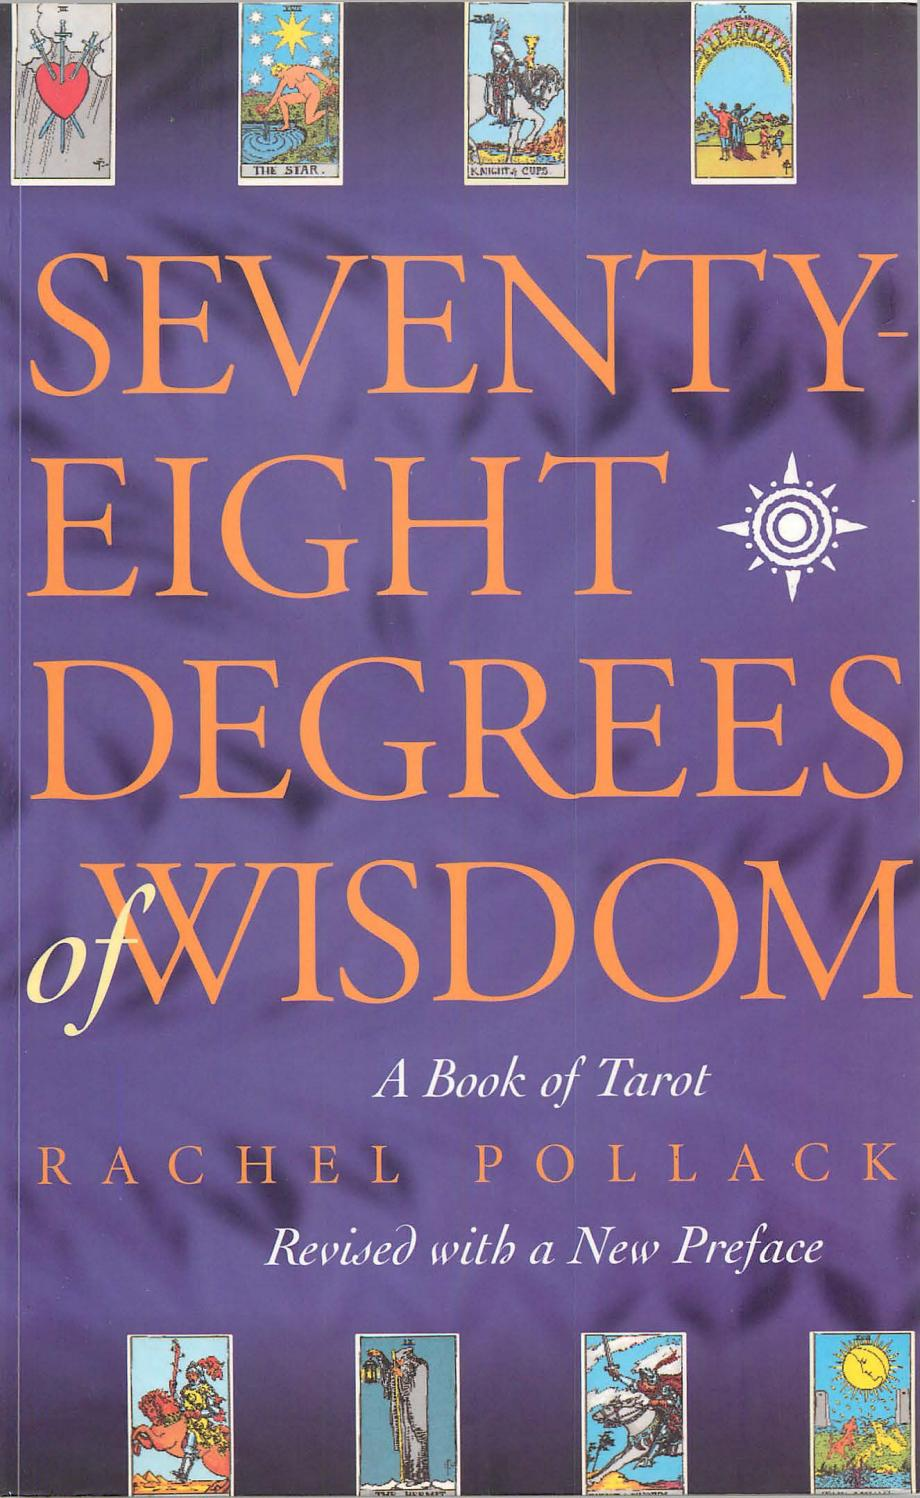 Seventy eight degrees of wisdom a book of tarot revised rachel